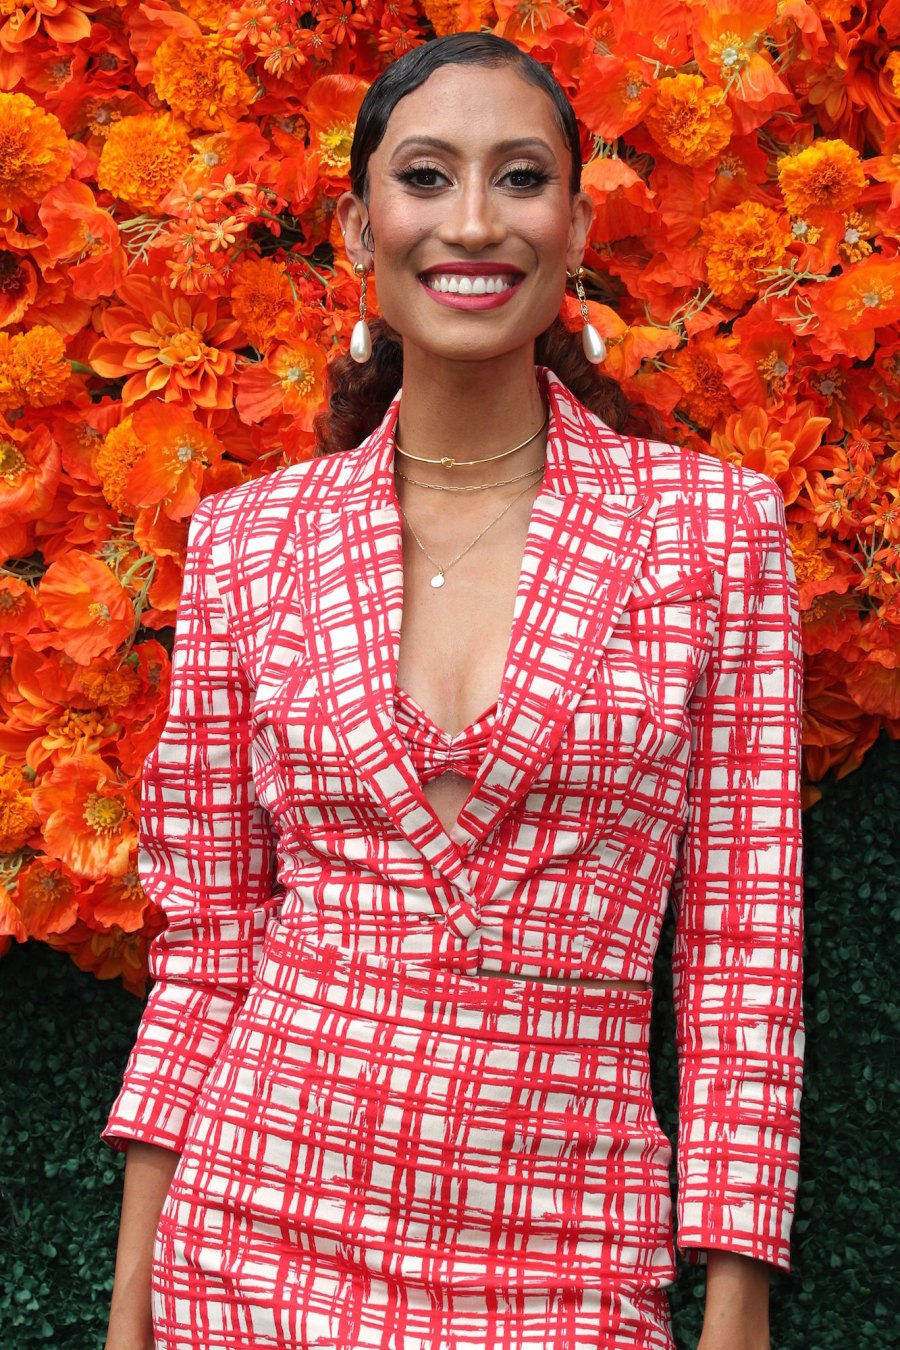 The Real's Elaine Welteroth Is Pregnant, Expecting Her 1st Child